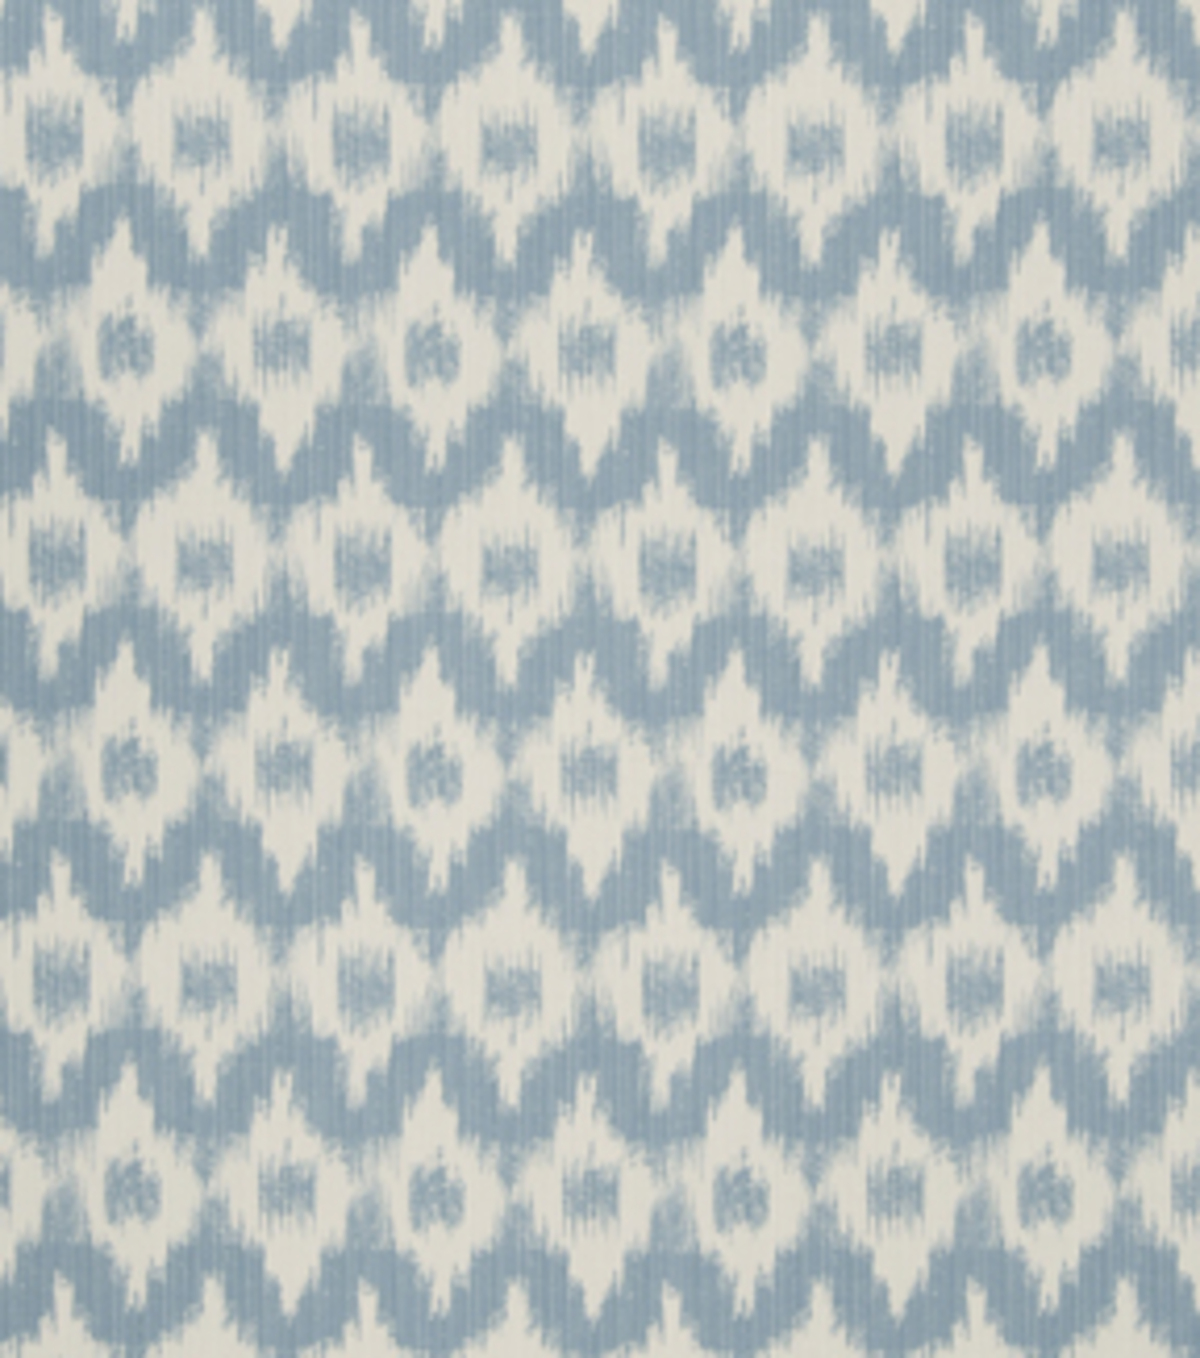 Home Decor 8\u0022x8\u0022 Fabric Swatch-French General Cecilia Bleu